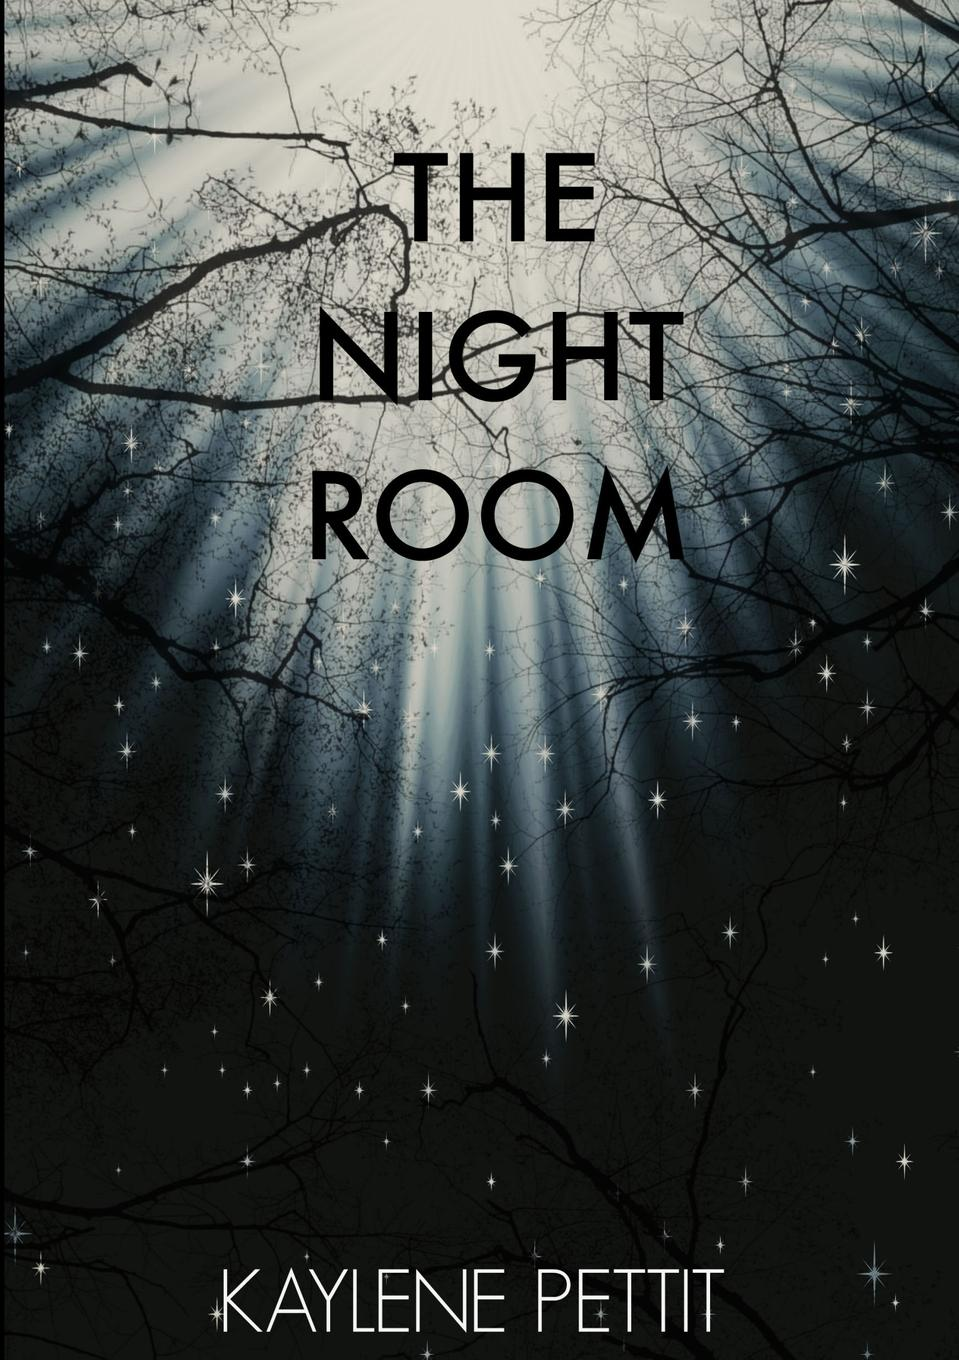 Kaylene Pettit The Night Room gothic art vampires witches demons dragons werewolves